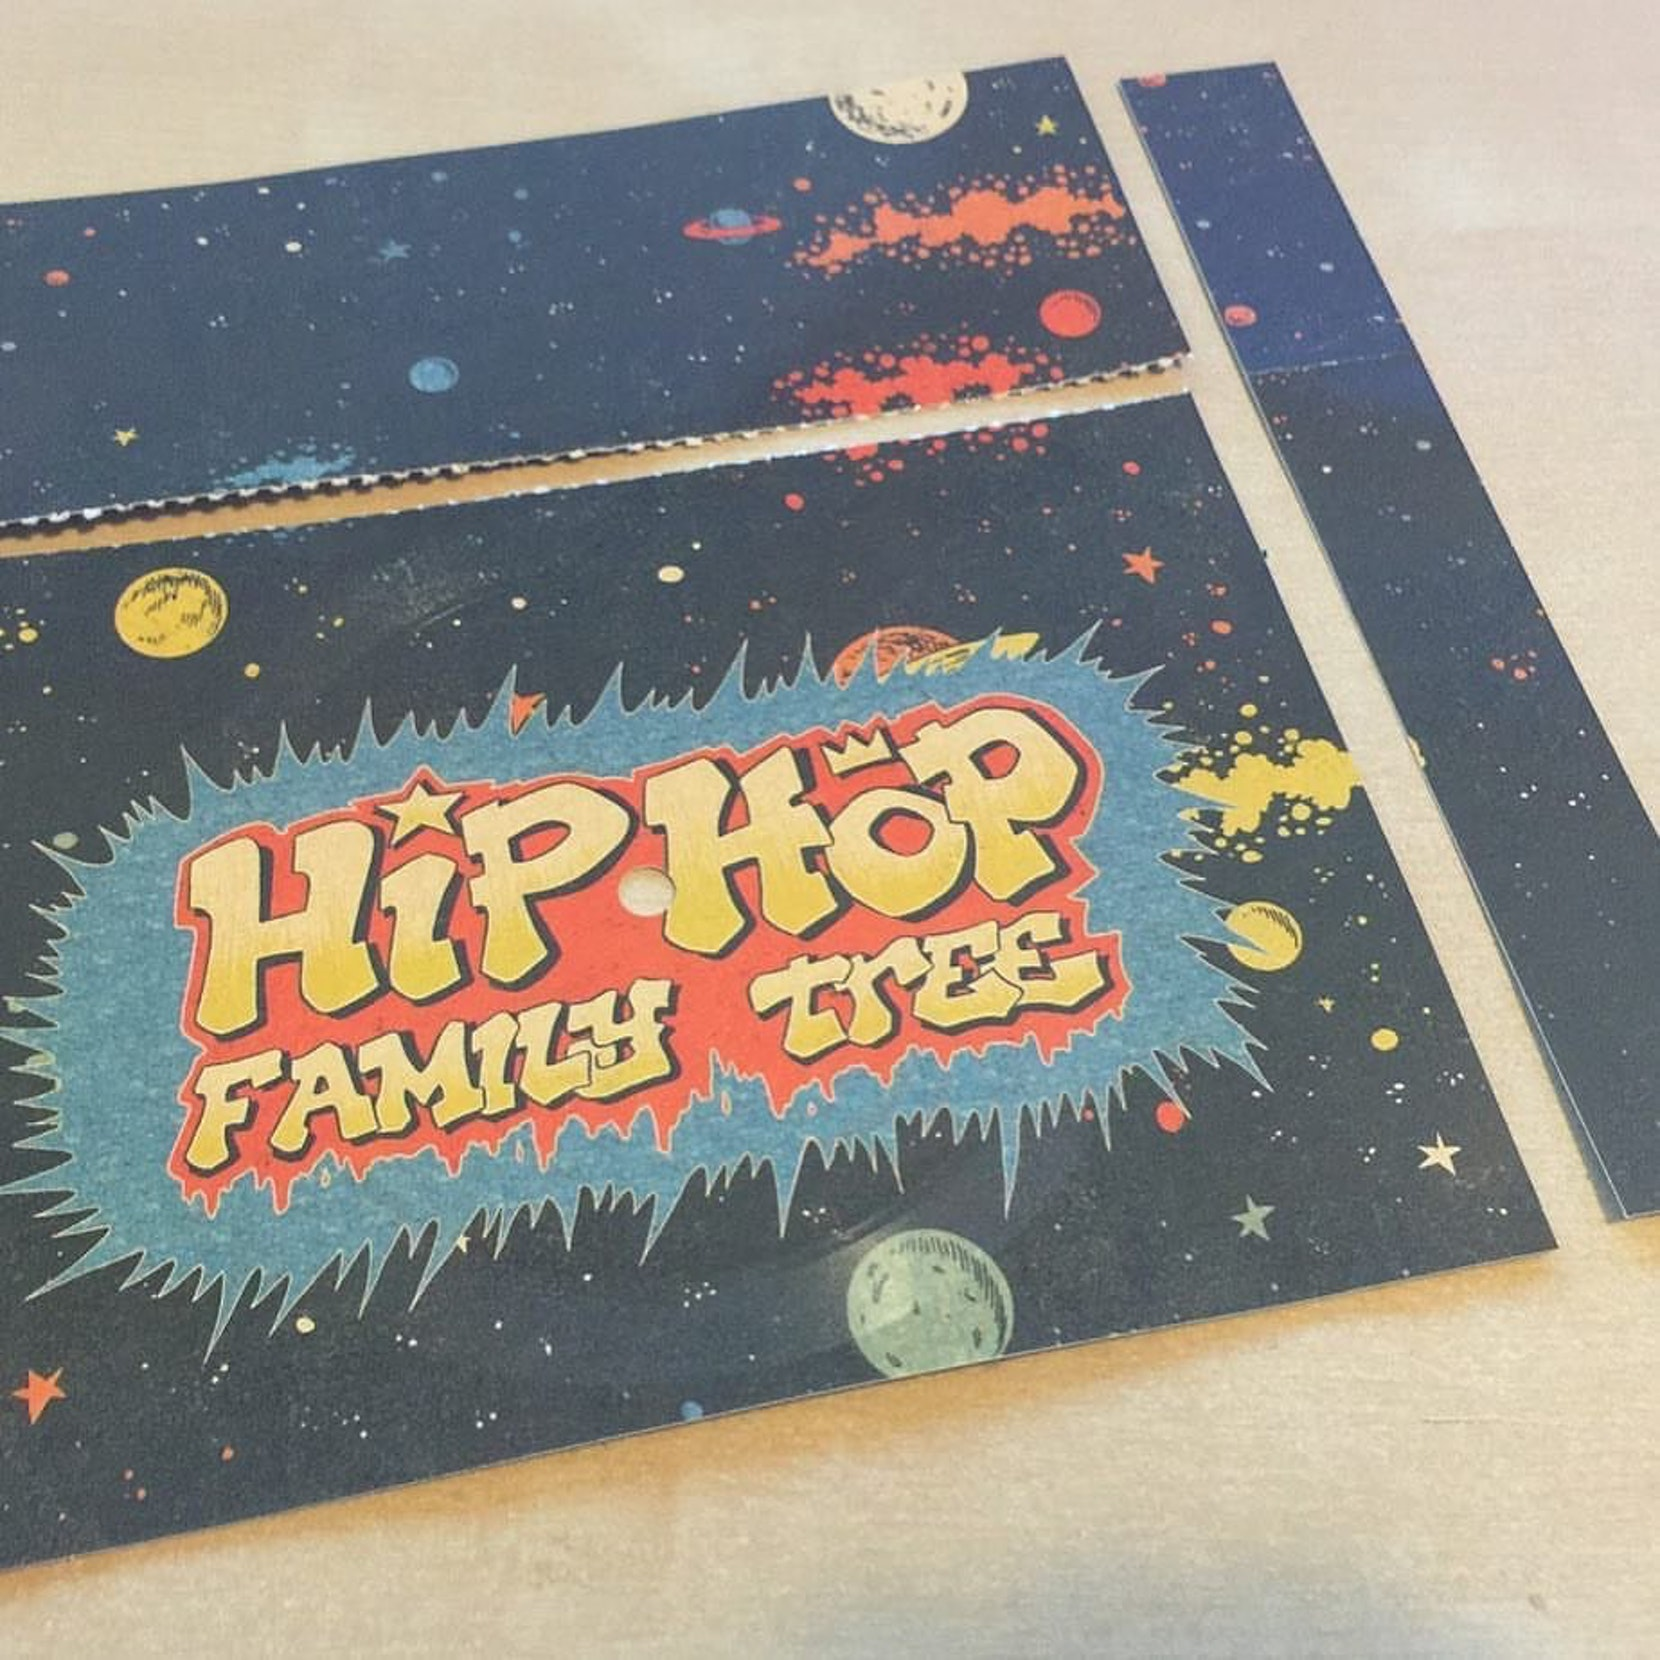 Ed Piskor's hip-hop flexi disc.